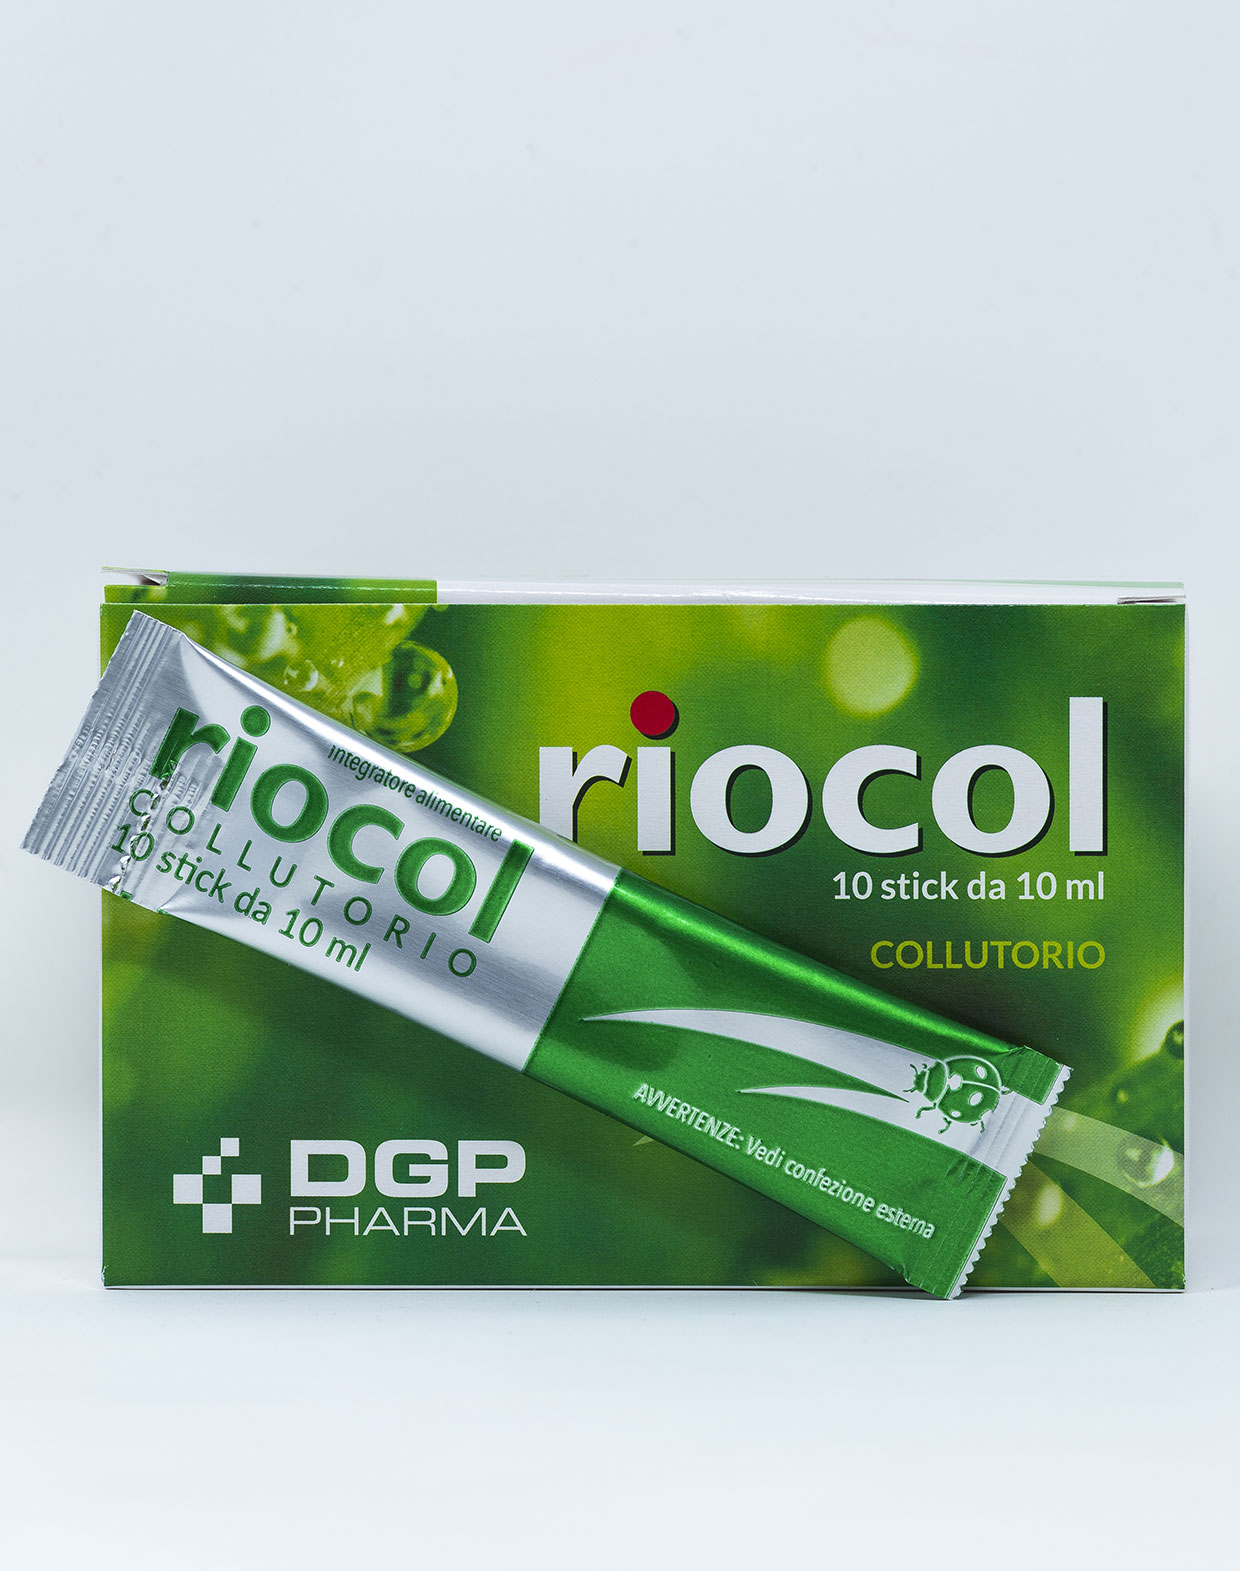 Riocol Stick Collutorio Integratore Alimentare in Bustina - 10 pz x 10 ml